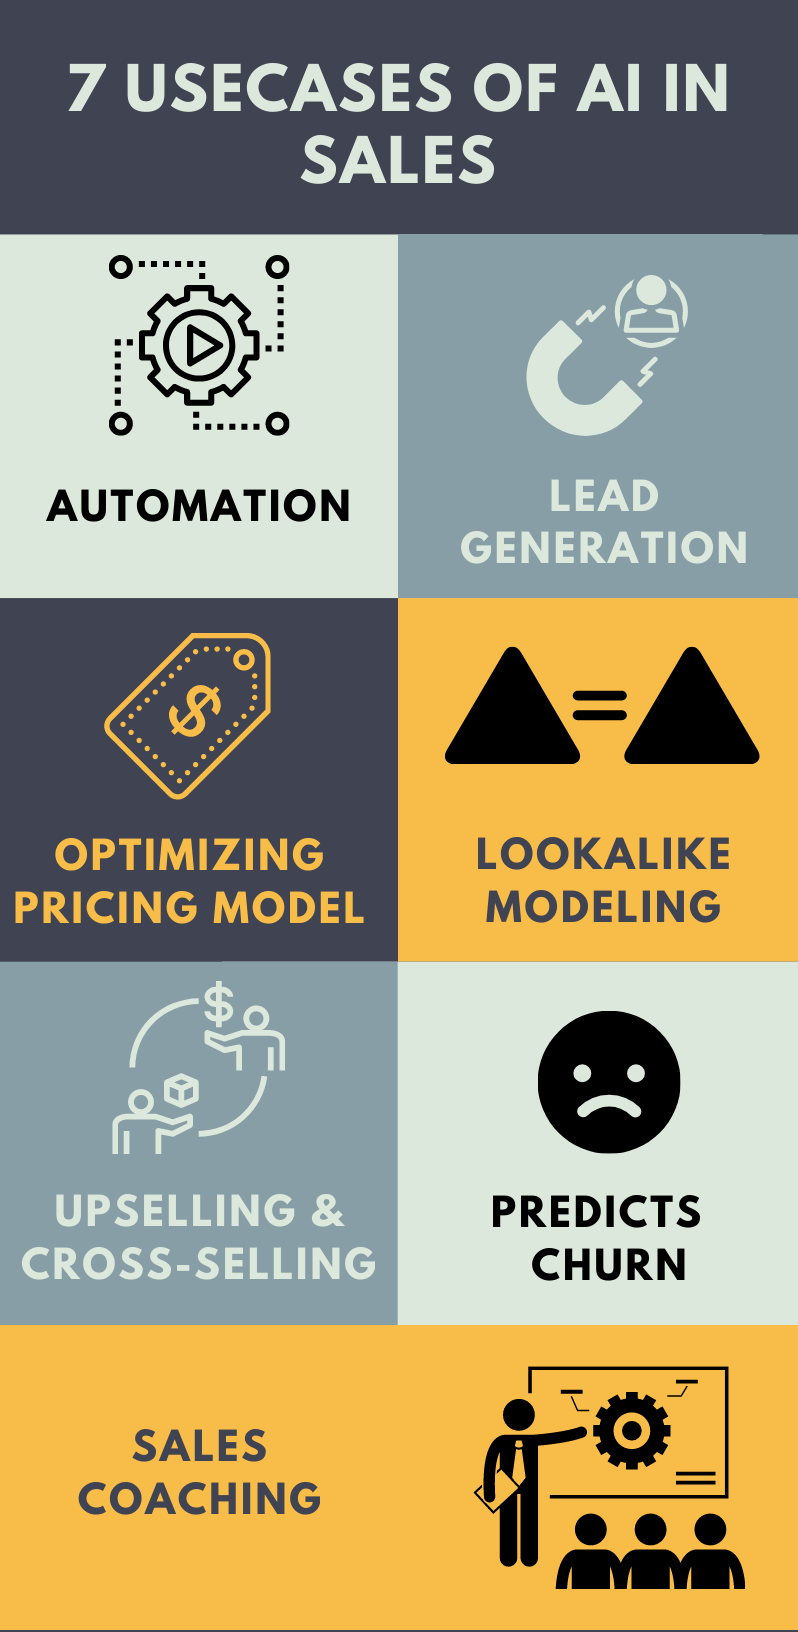 Usecases of AI in Sales